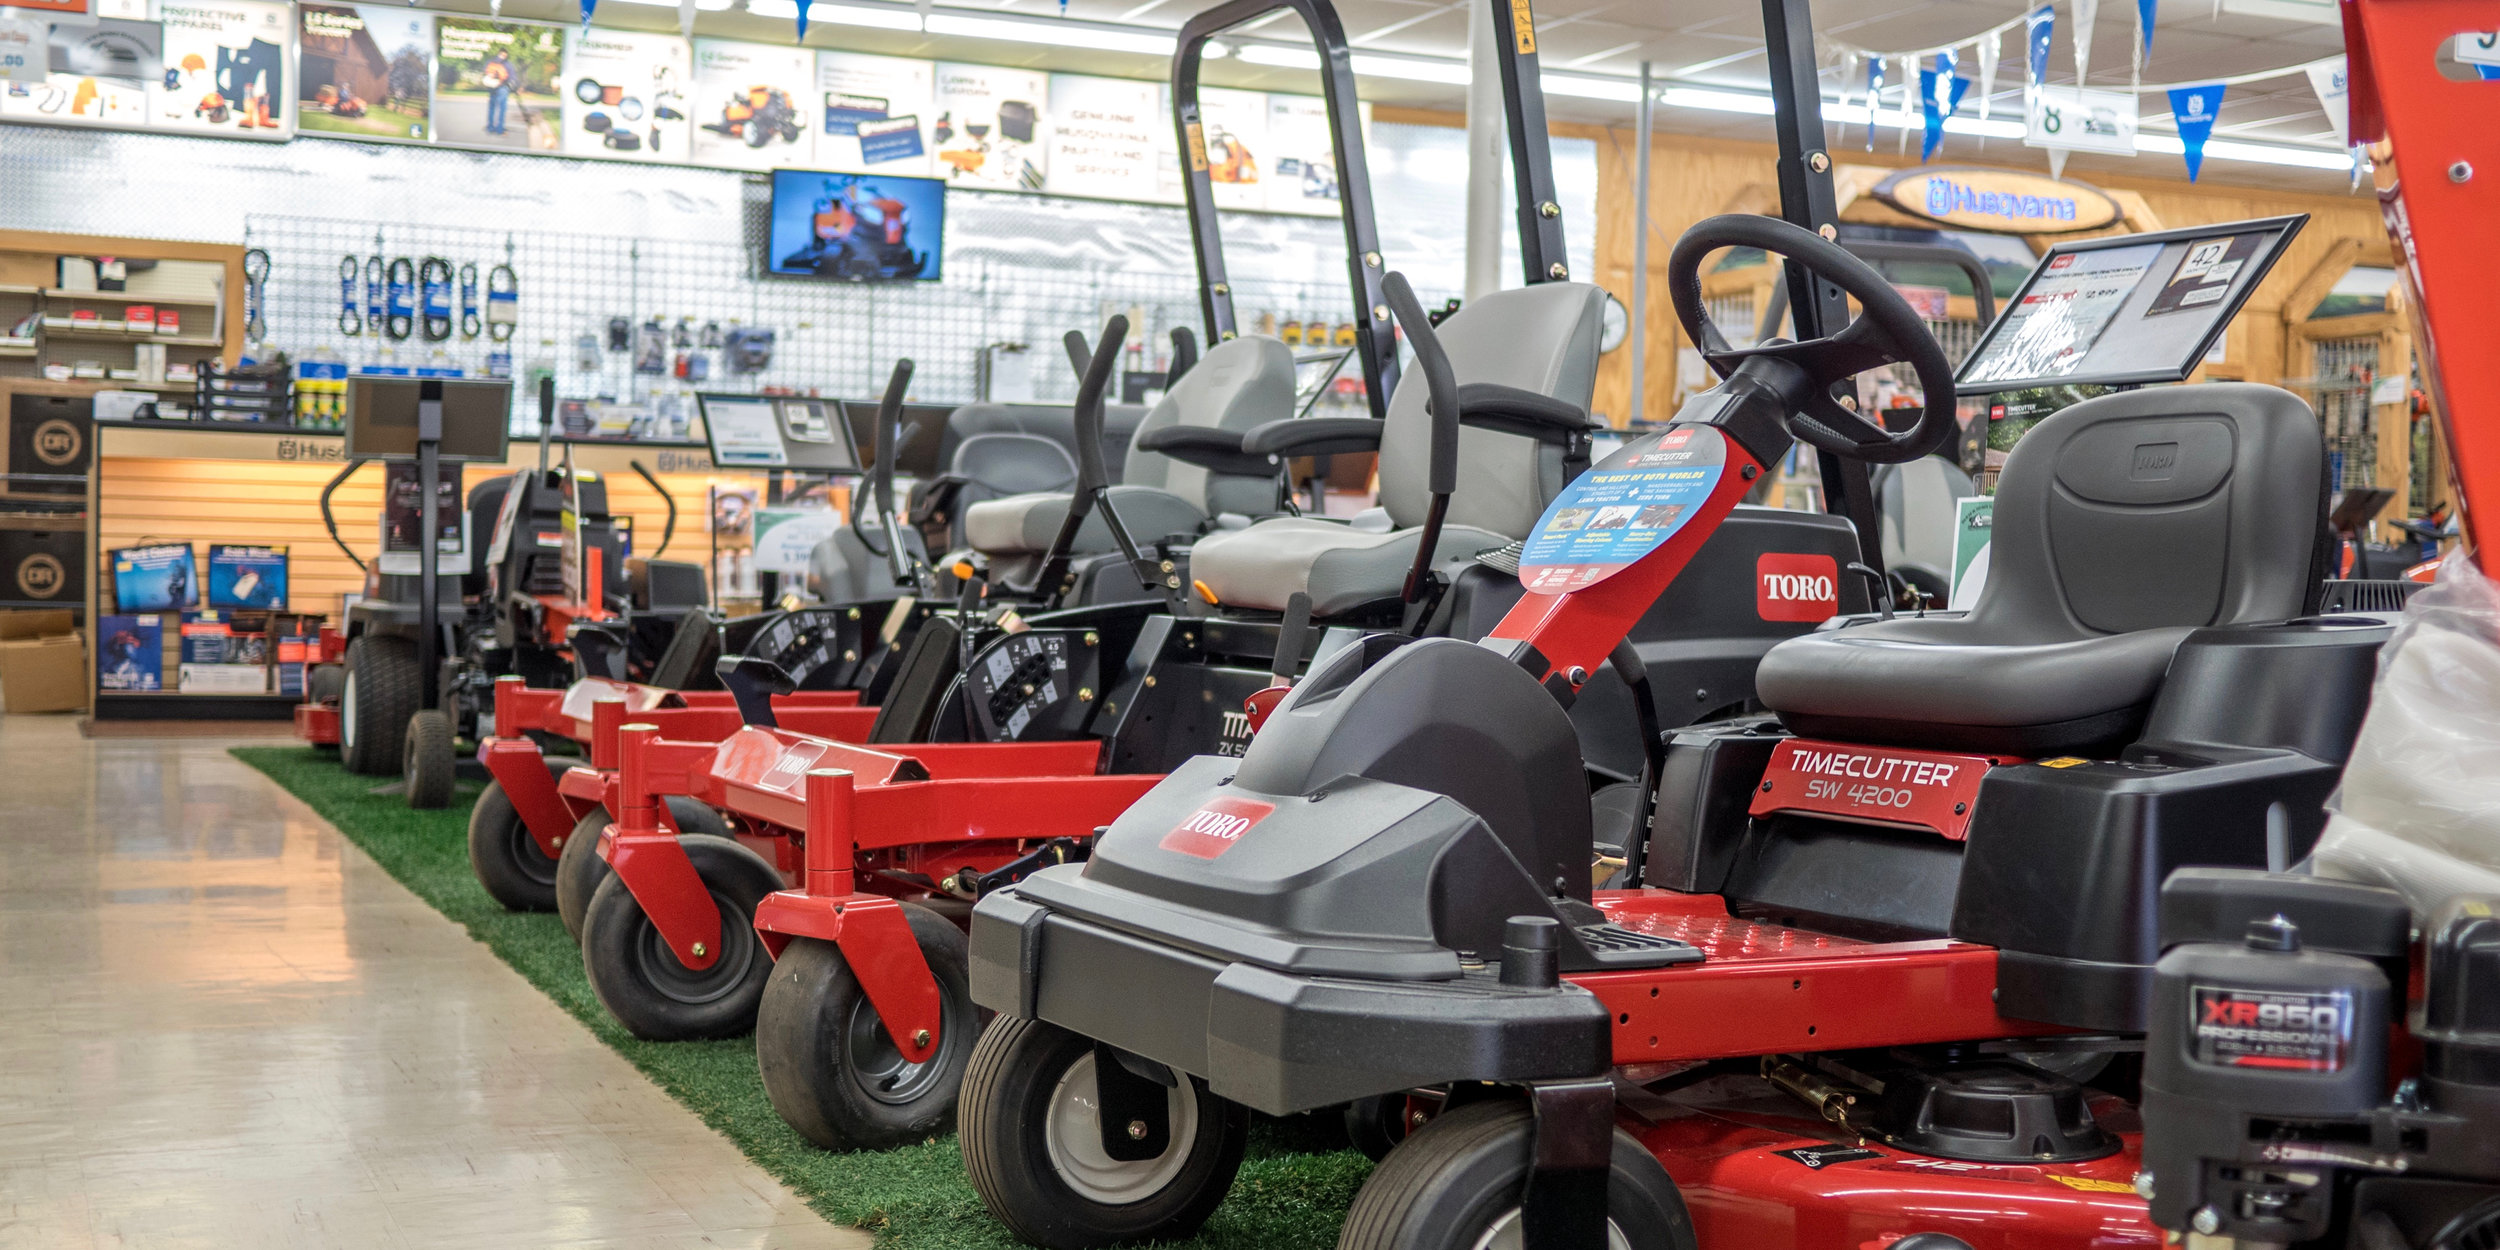 •Our Showroom holds various models from Toro, giving you options to choose from. -